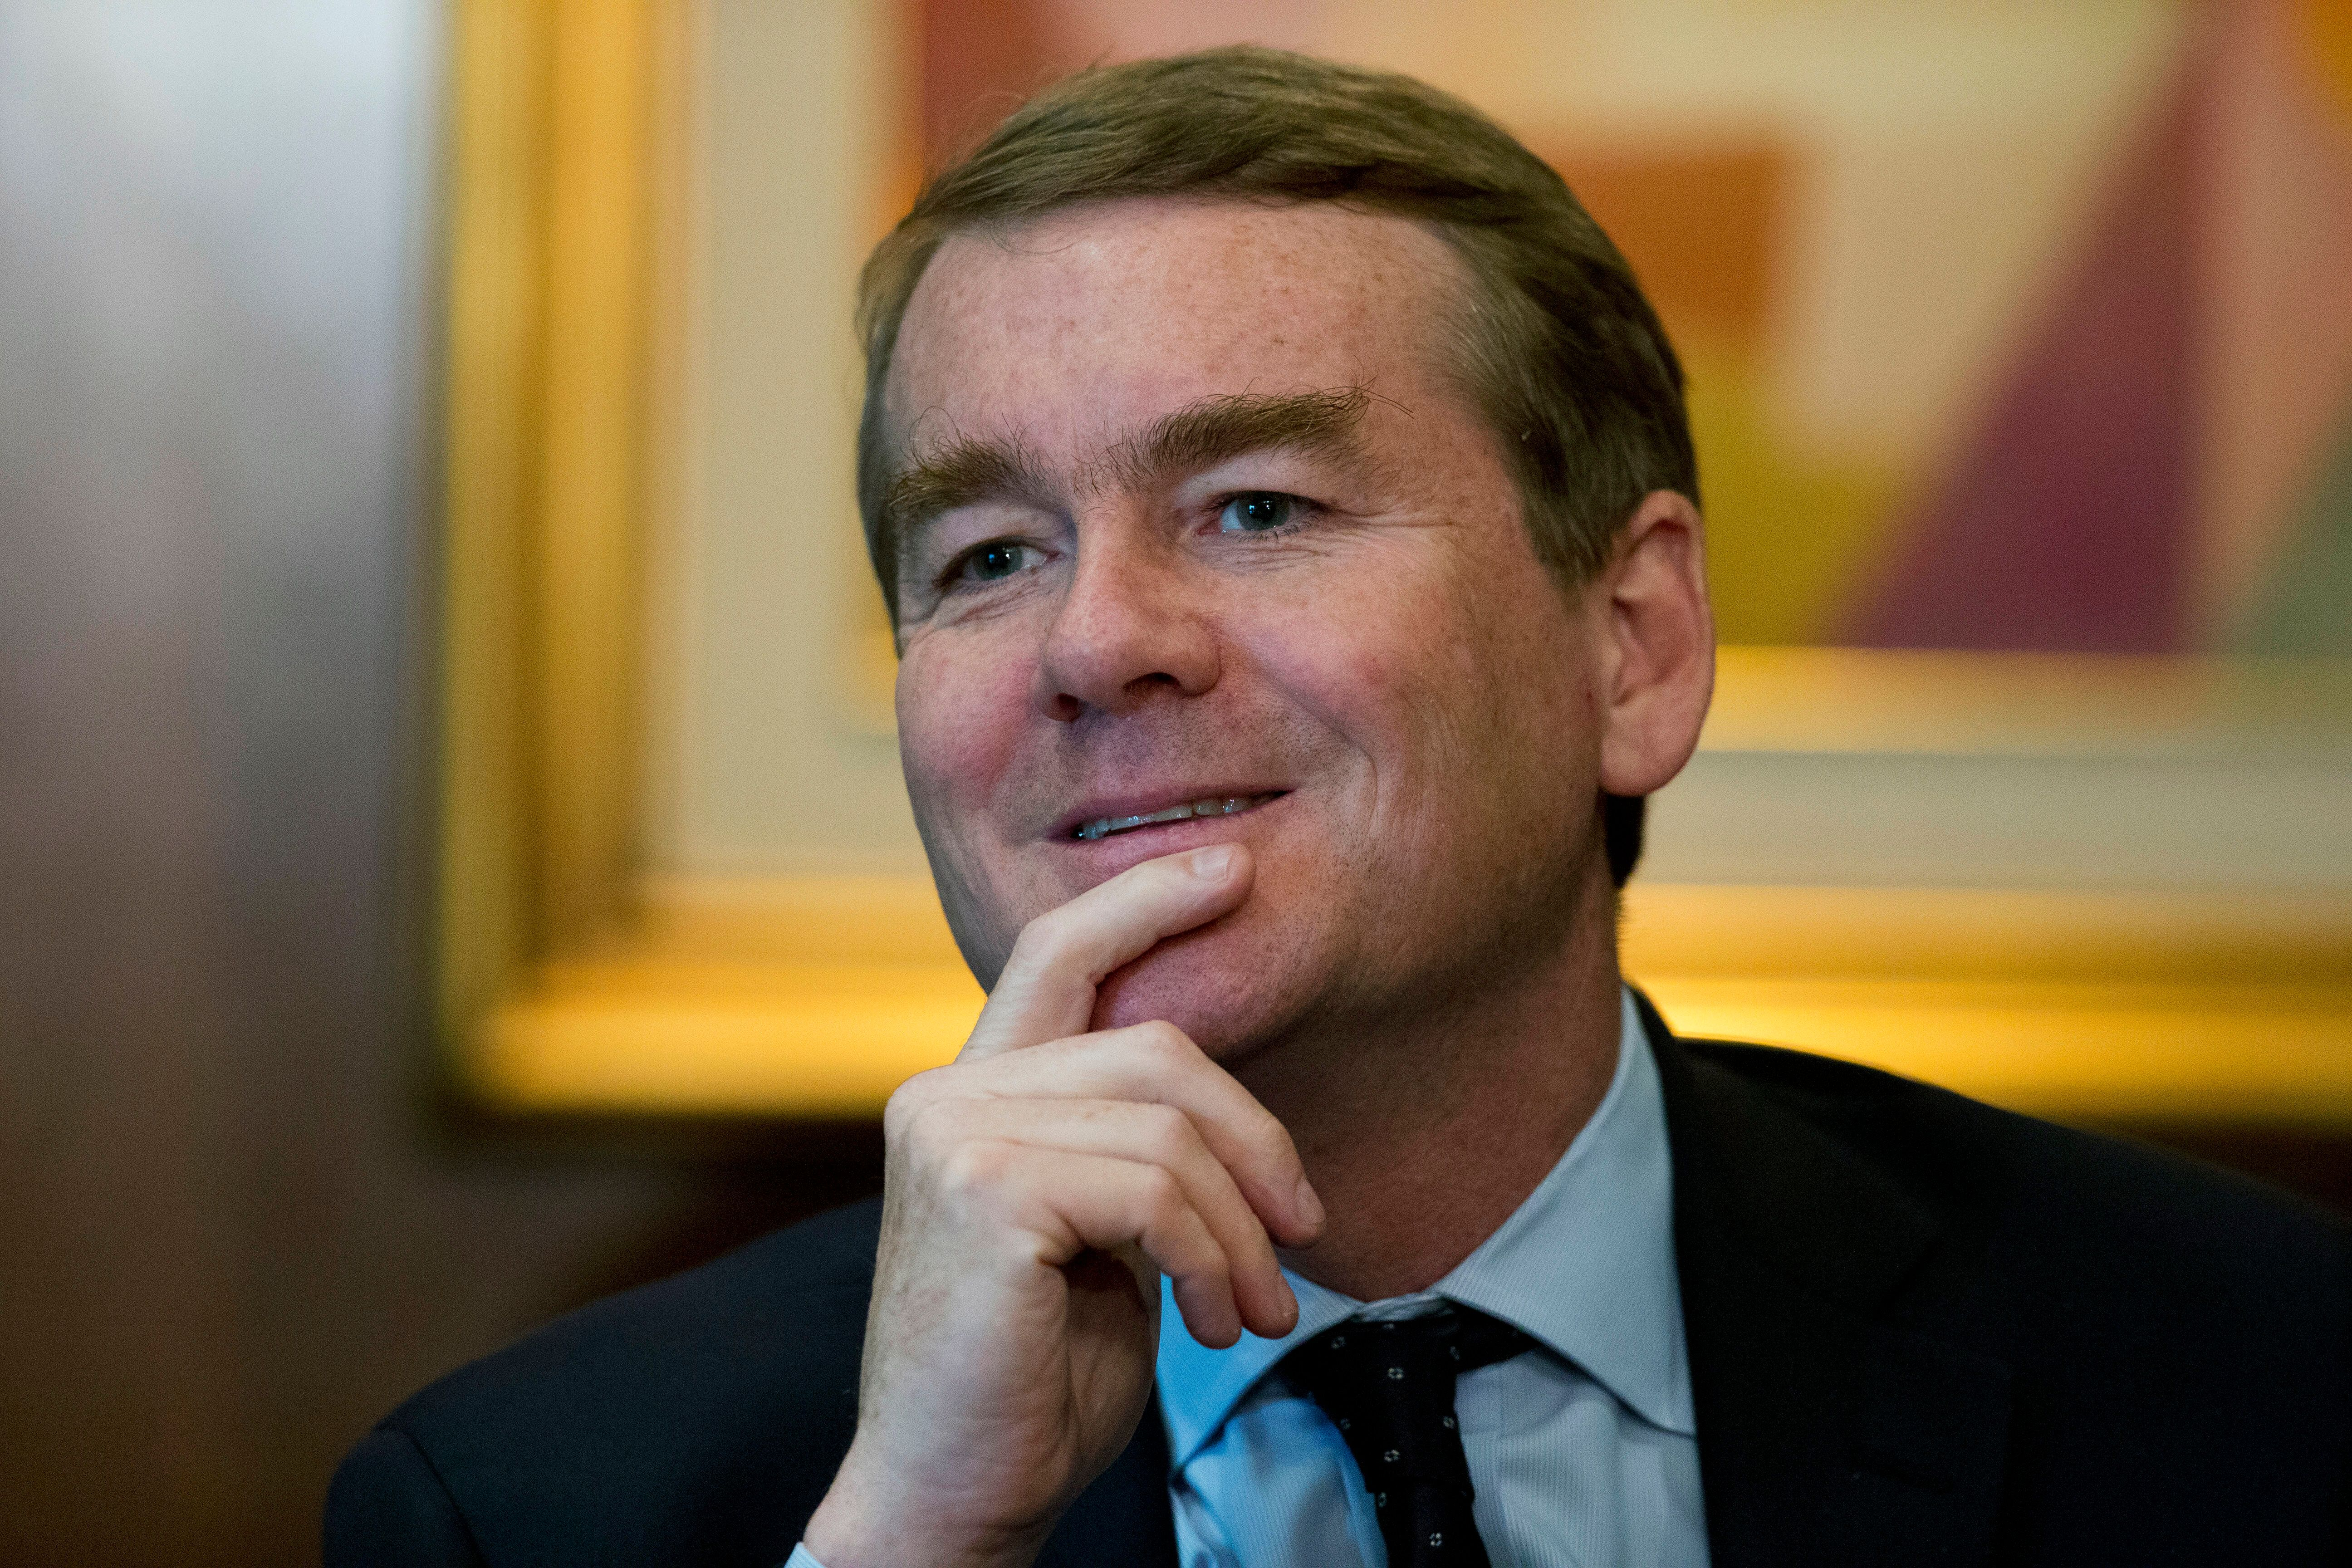 Michael Bennet is a senator from Colorado andformer head of the Denver school district.